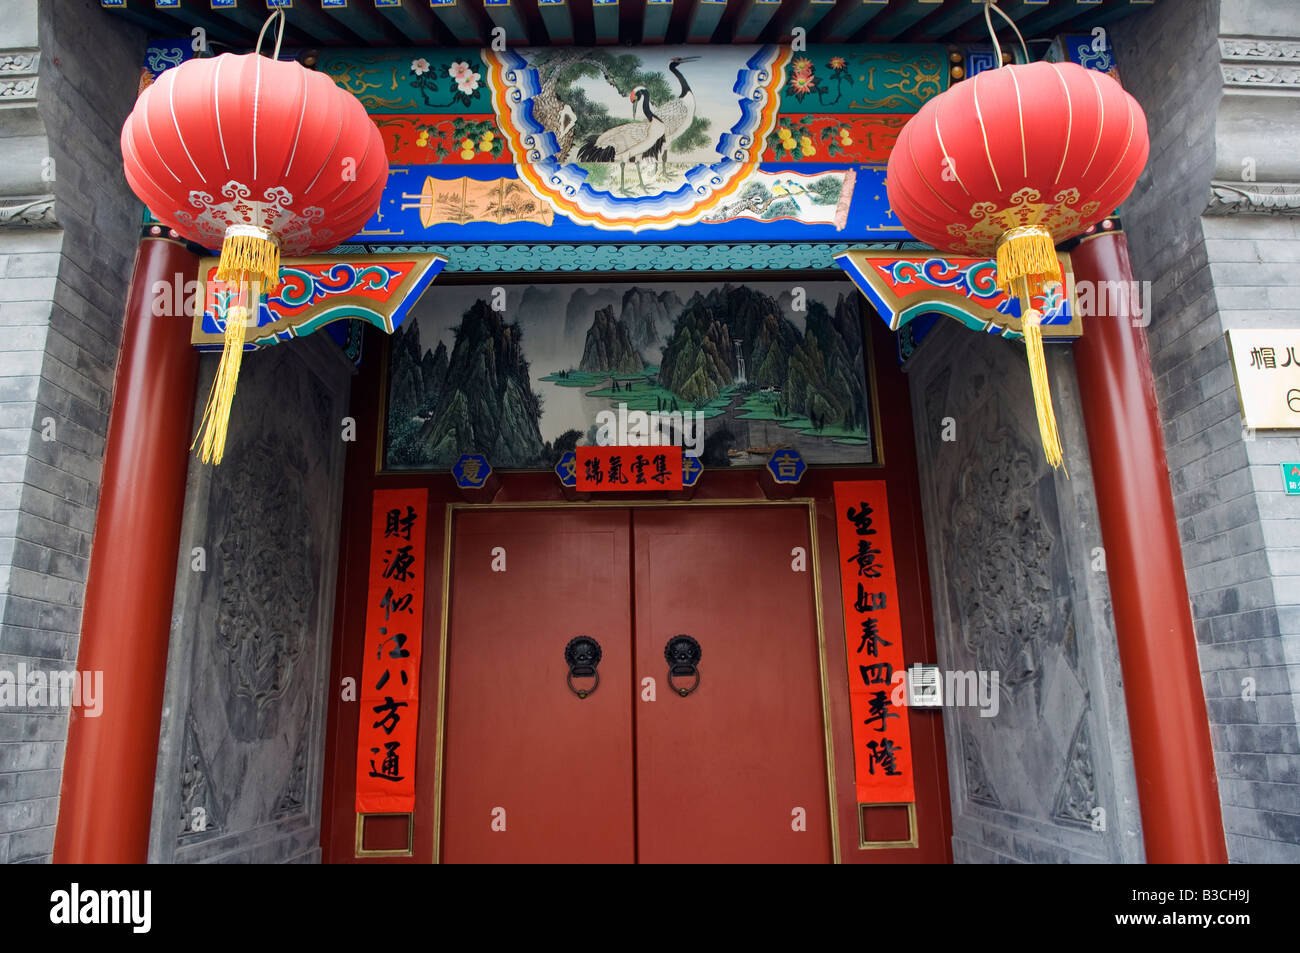 China, Beijing. Chinese New Year Spring Festival - lantern decorations on a hutong house. - Stock Image